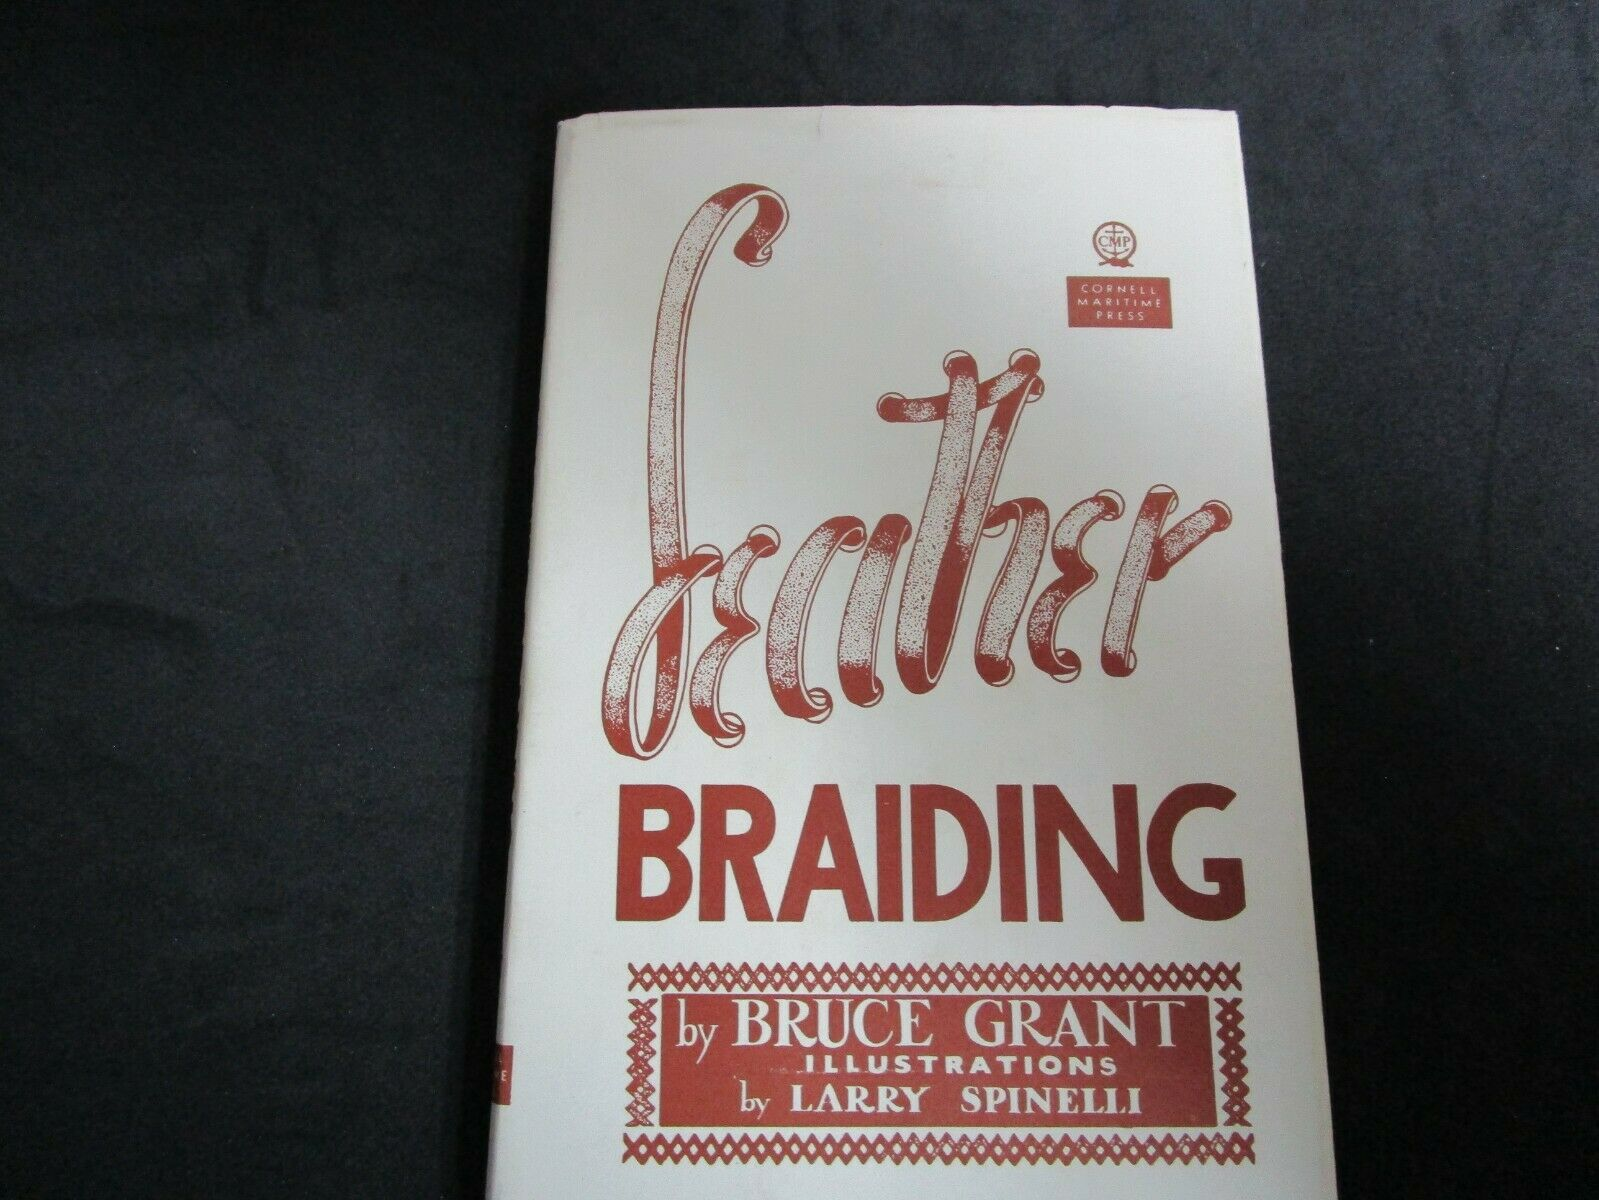 Vintage Leather Book-Leather Braiding By Bruce Grant - $24.99